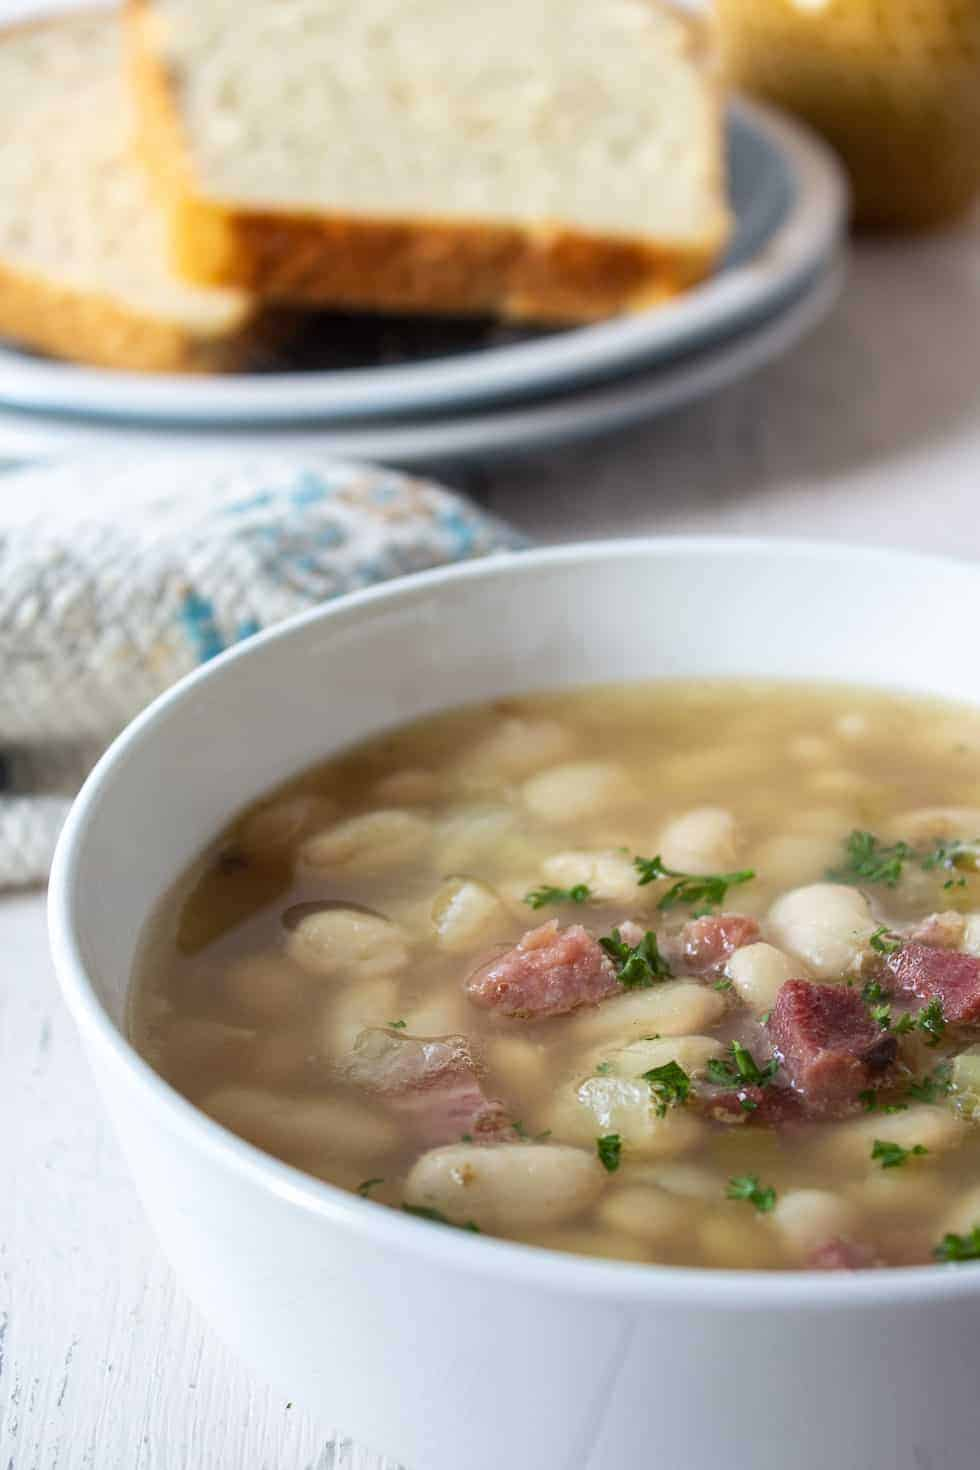 A bowl of soup with white beans and ham.